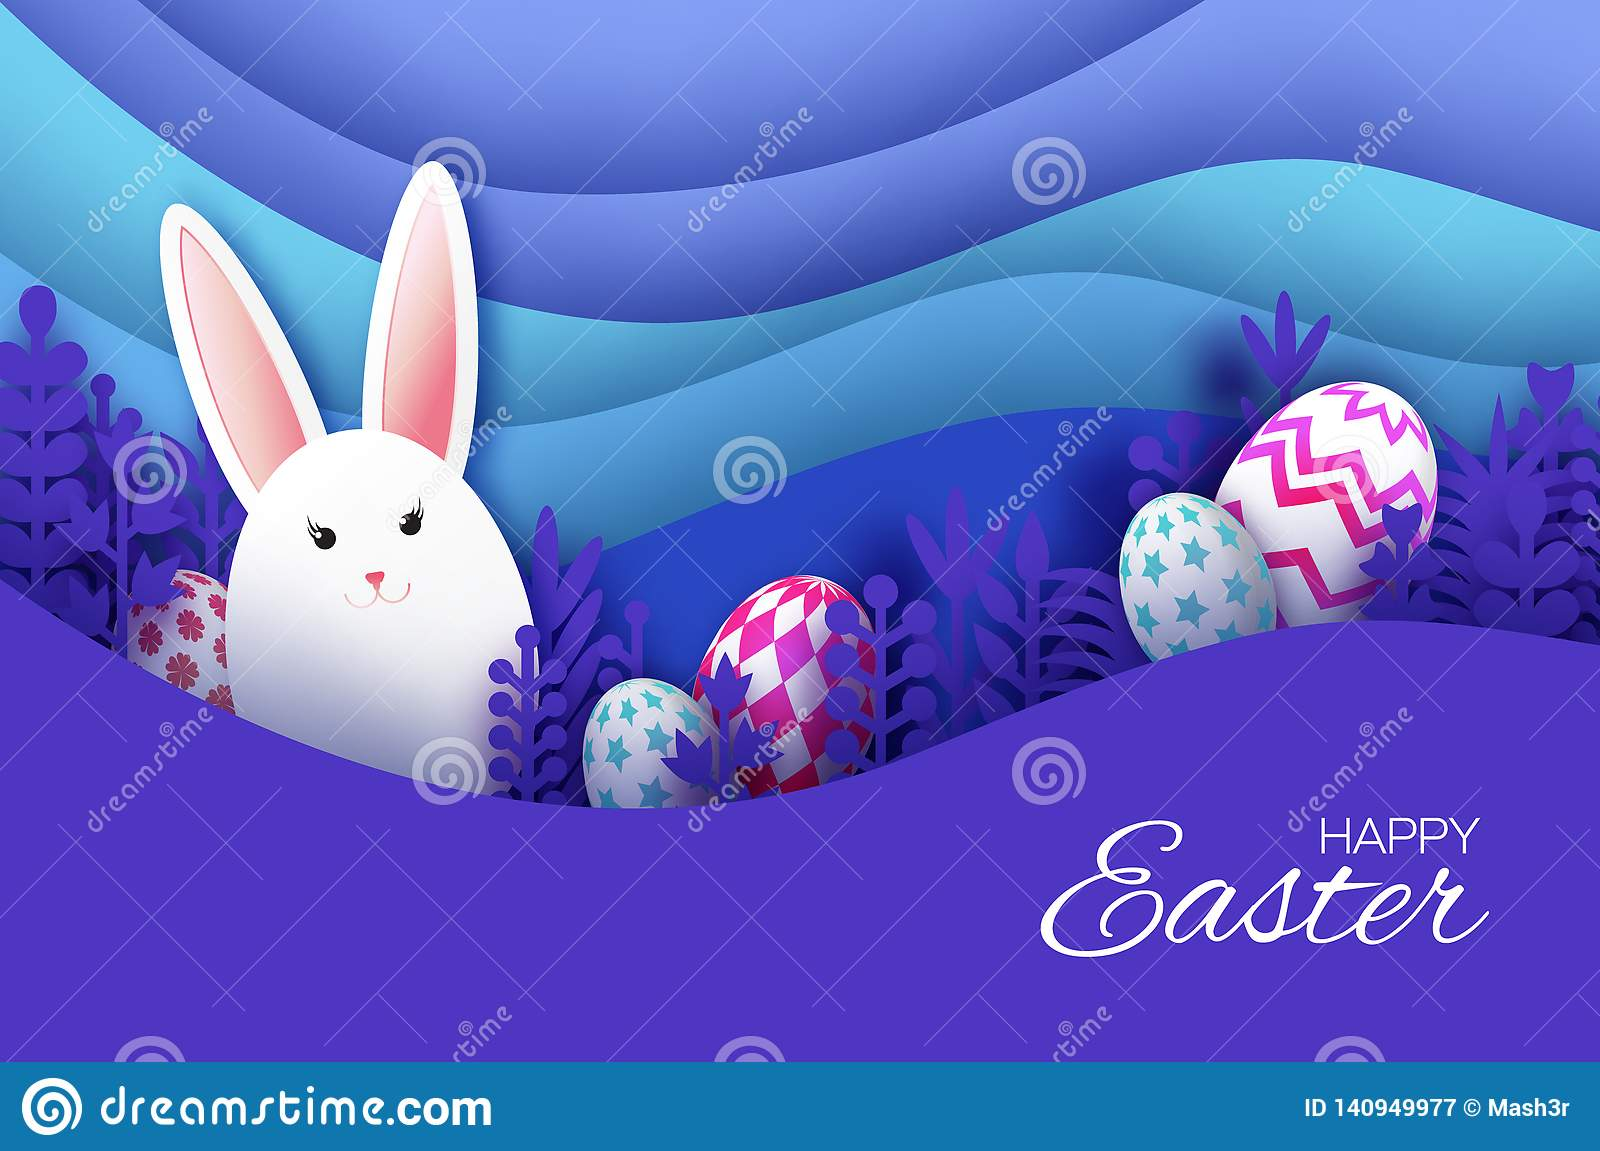 Happy Easter Greeting card with paper cut bunny rabbit, spring flowers, colorful eggs. Origami layered landscape. Place